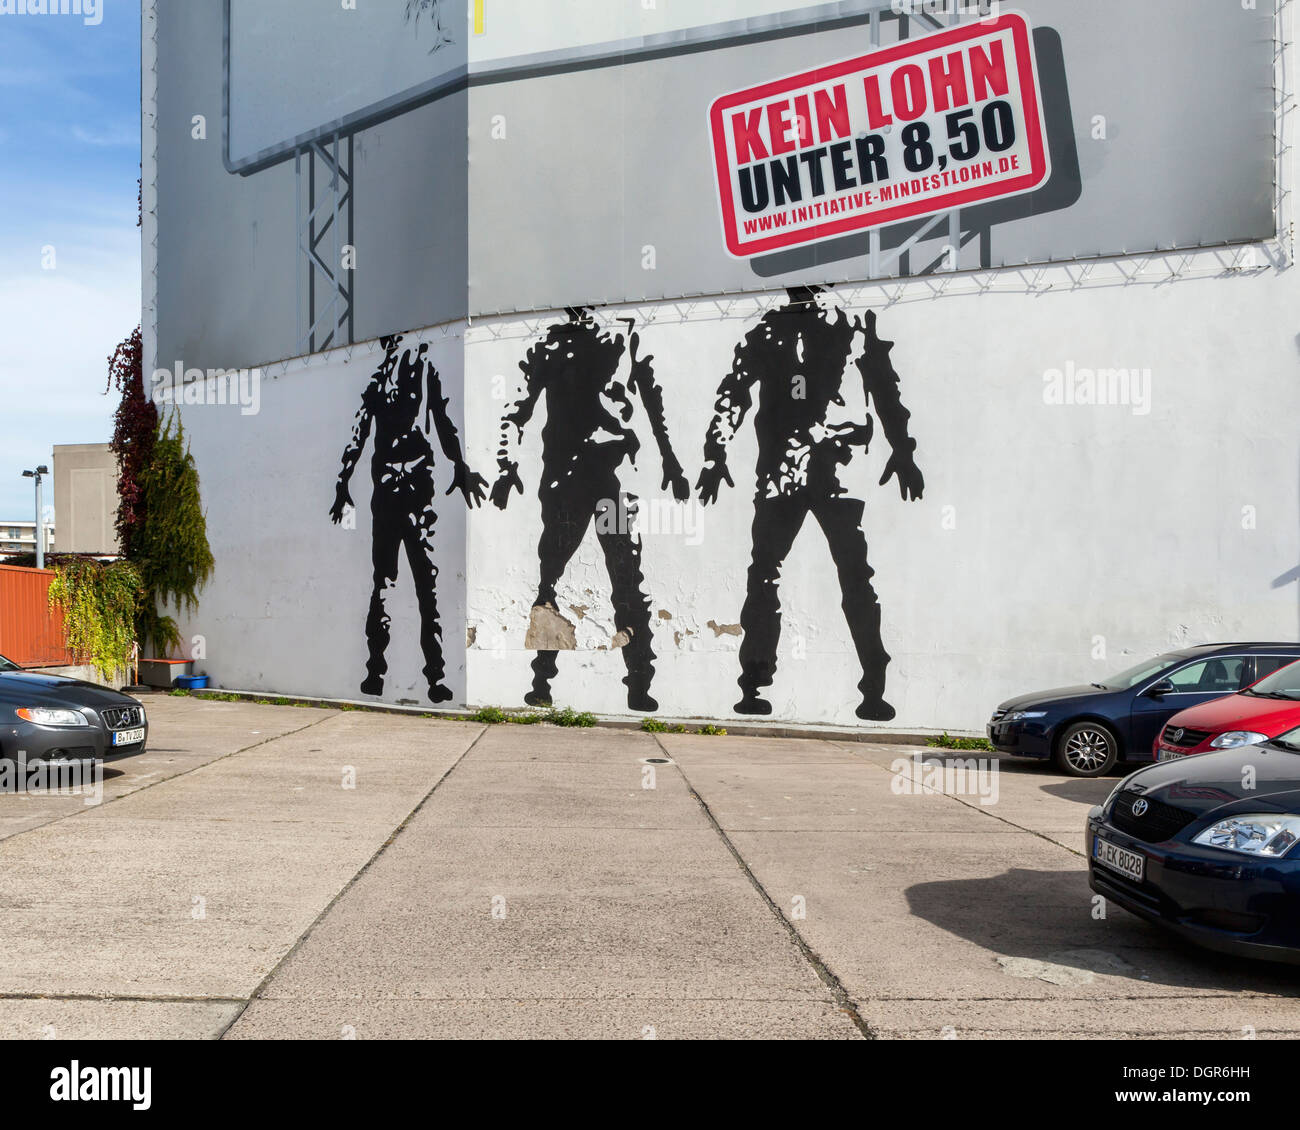 Political minimum wage poster 'No wage under 8.50 euros' and three headless men mural - Berlin - Stock Image